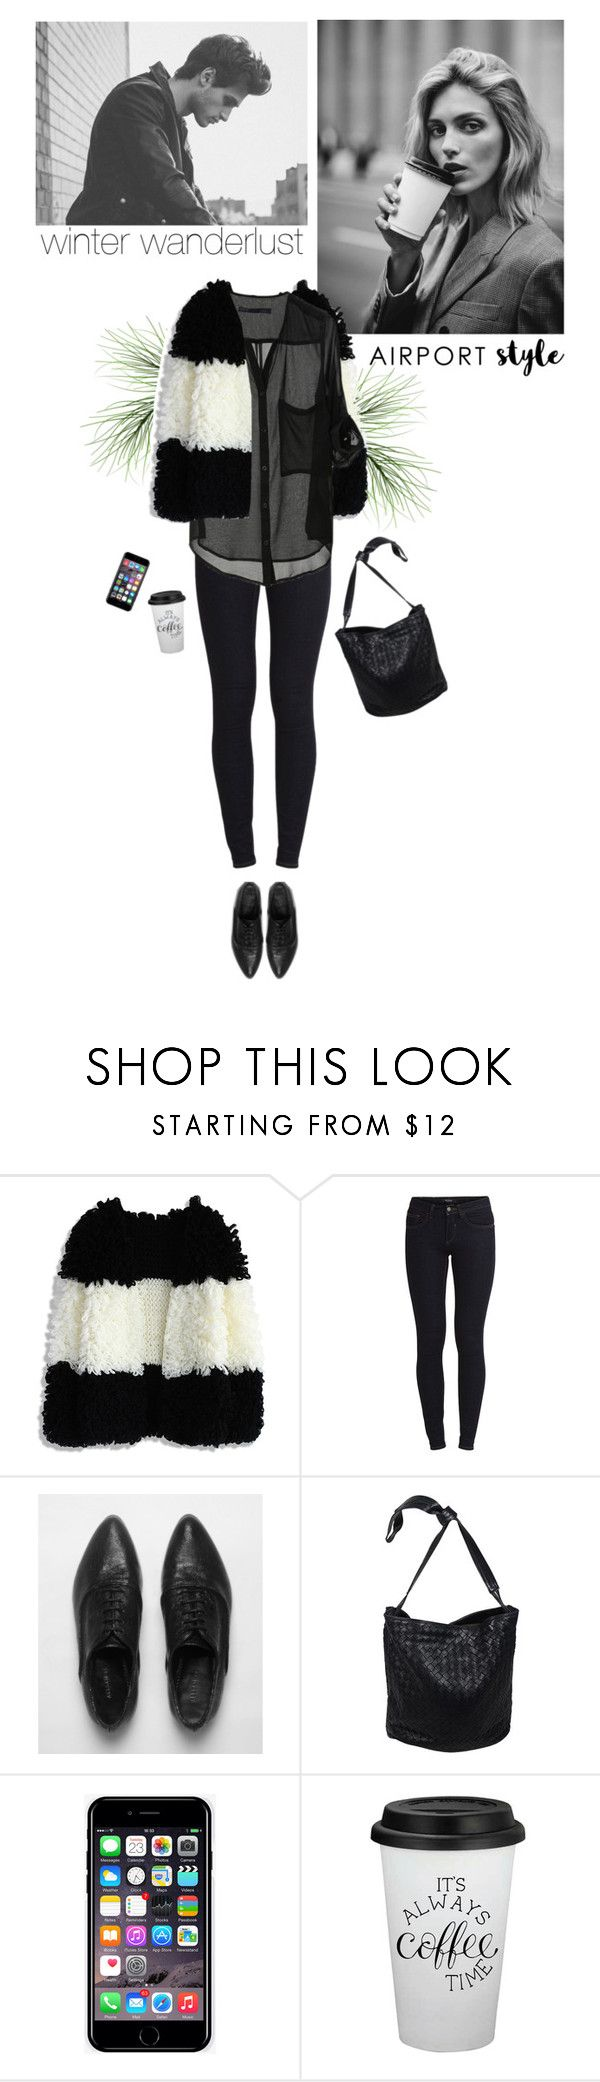 """my airport look"" by helena99 ❤ liked on Polyvore featuring Anja, Chicwish, Vila Milano, AllSaints, Bottega Veneta, Off-White, airportstyle and shaggysweater"